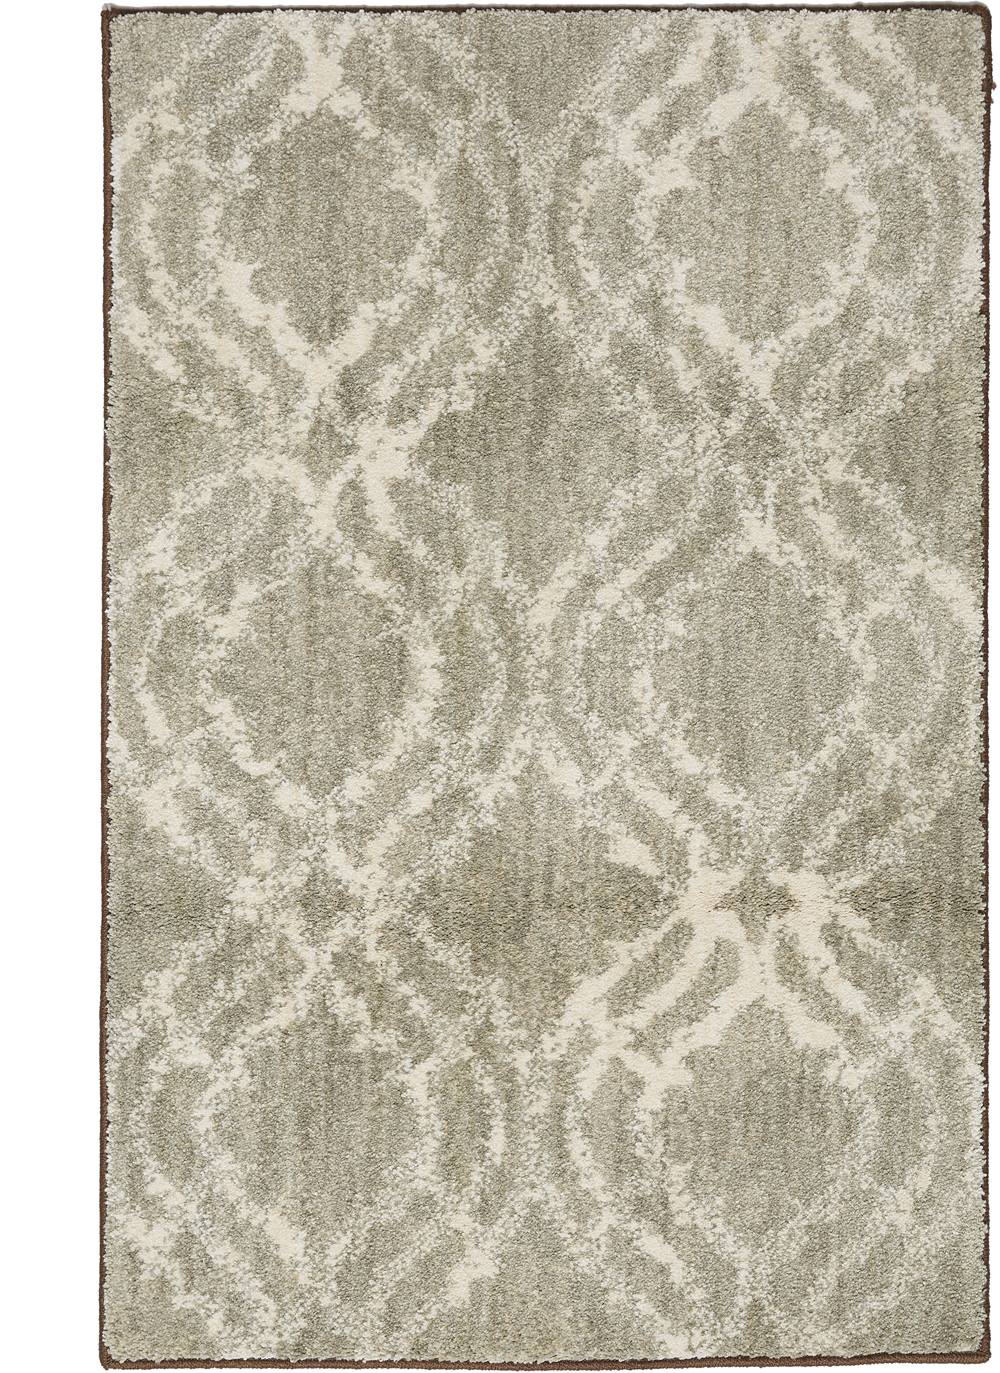 Karastan Euphoria 90274 Potterton Willow Grey Rug